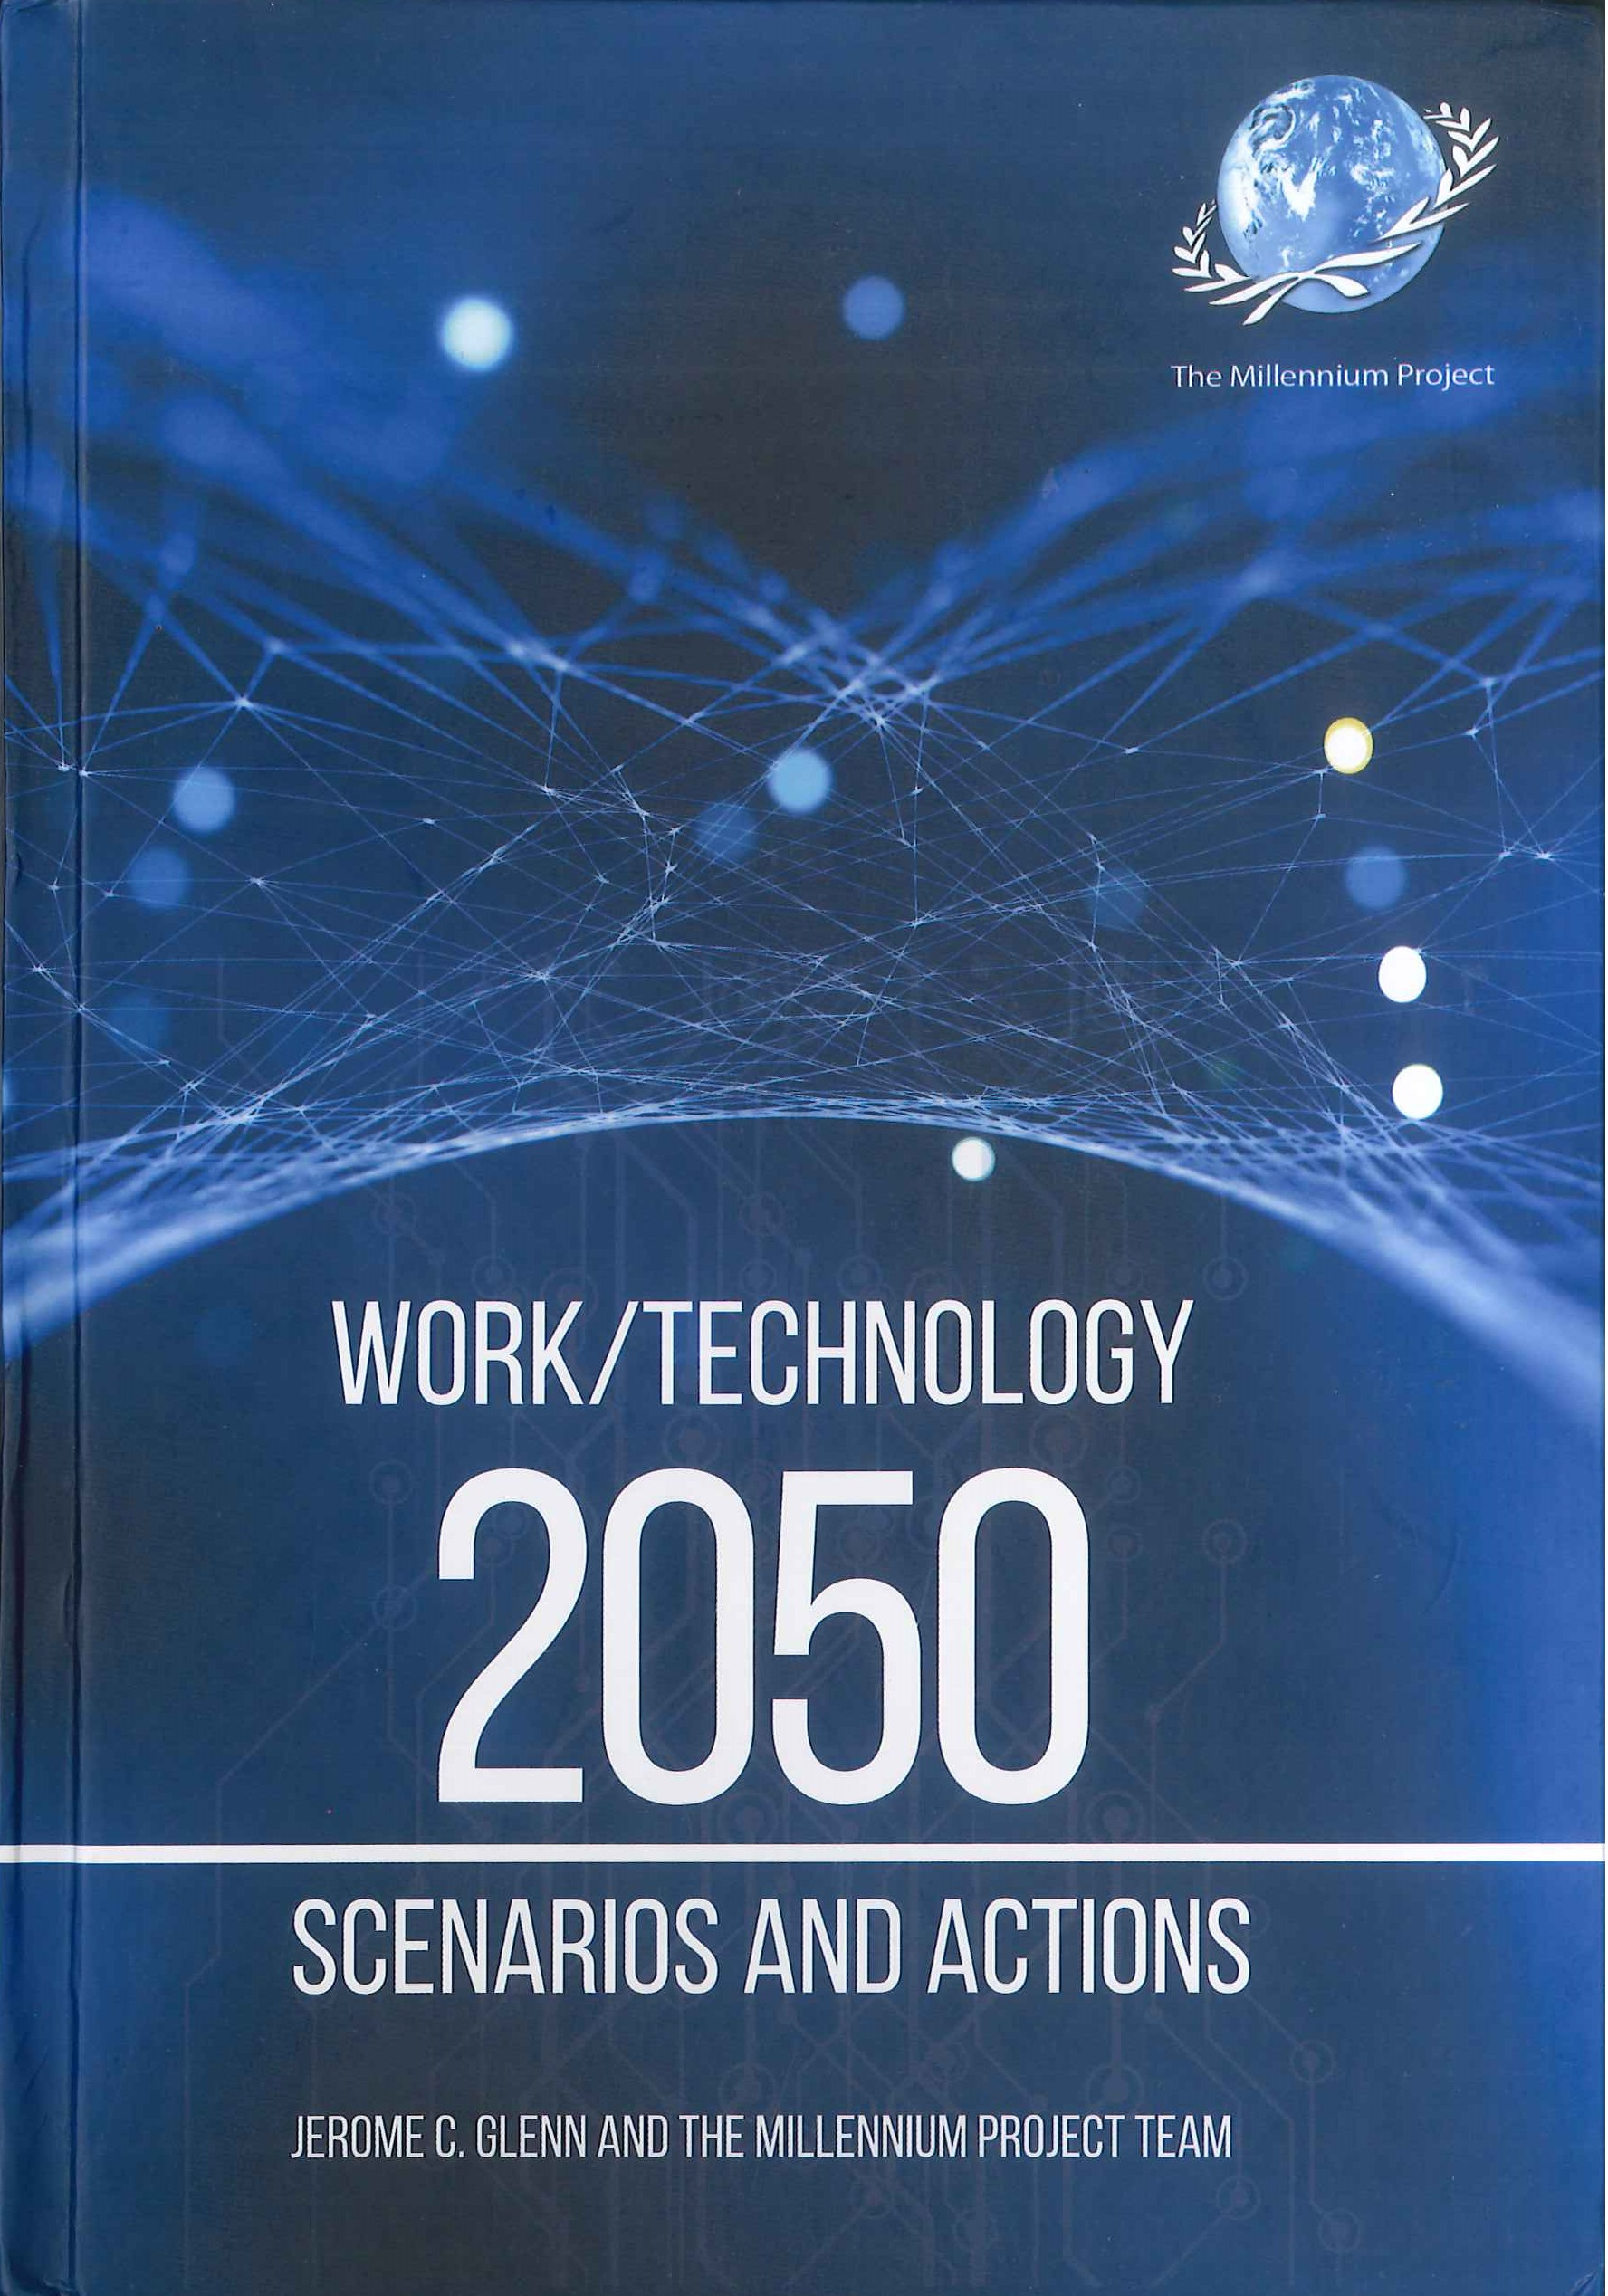 Work / Technology 2050:scenarios and actions